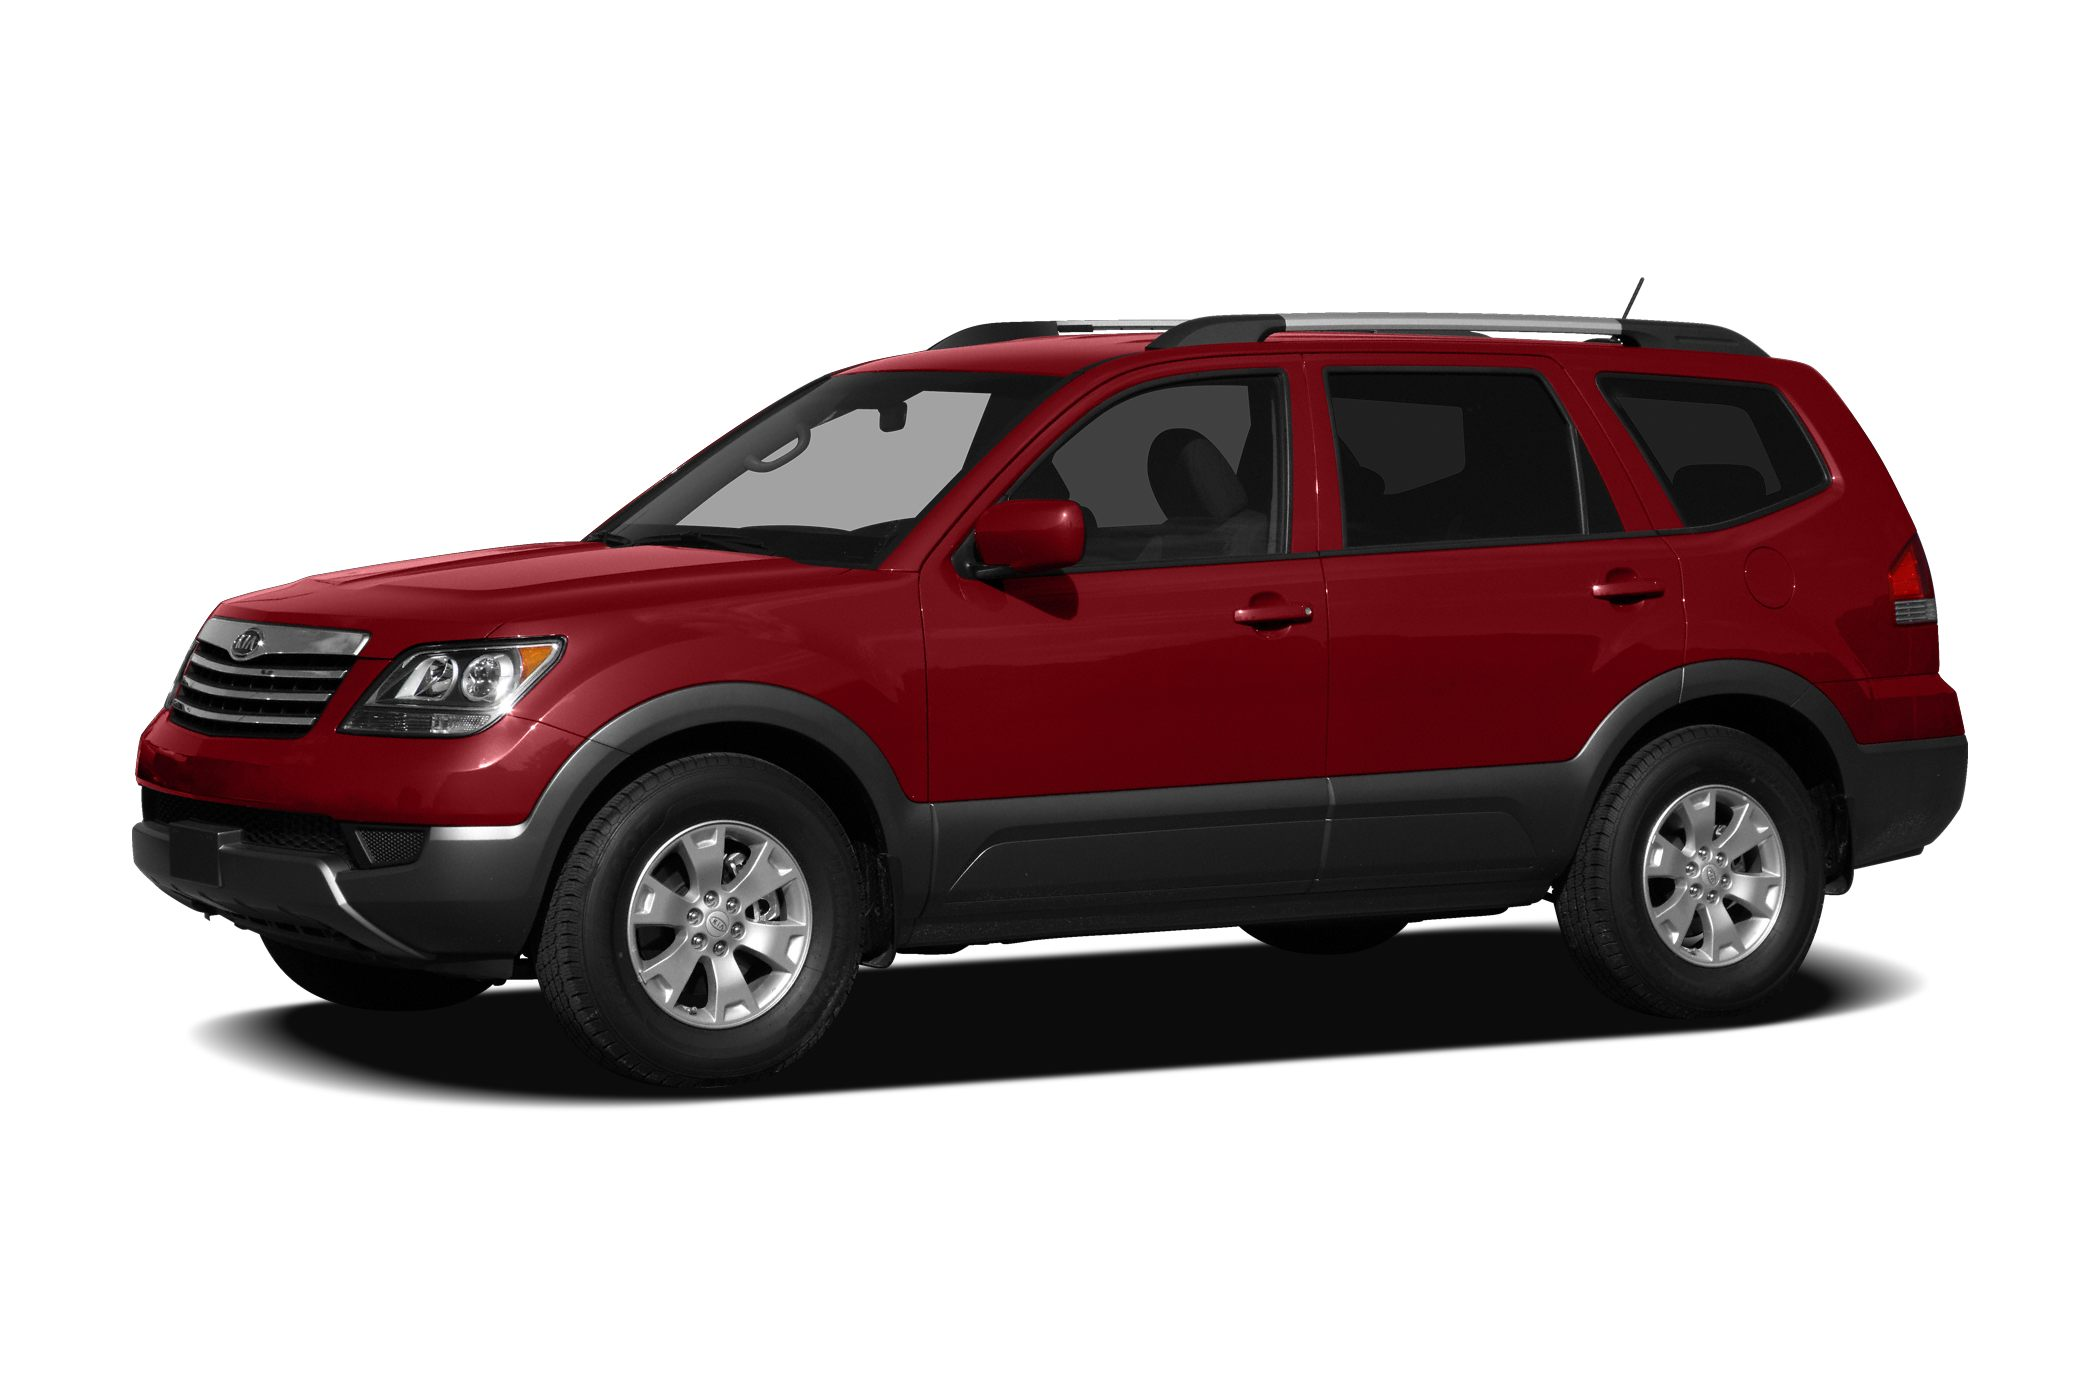 2009 Kia Borrego EX SUV for sale in Bonita Springs for $14,999 with 51,012 miles